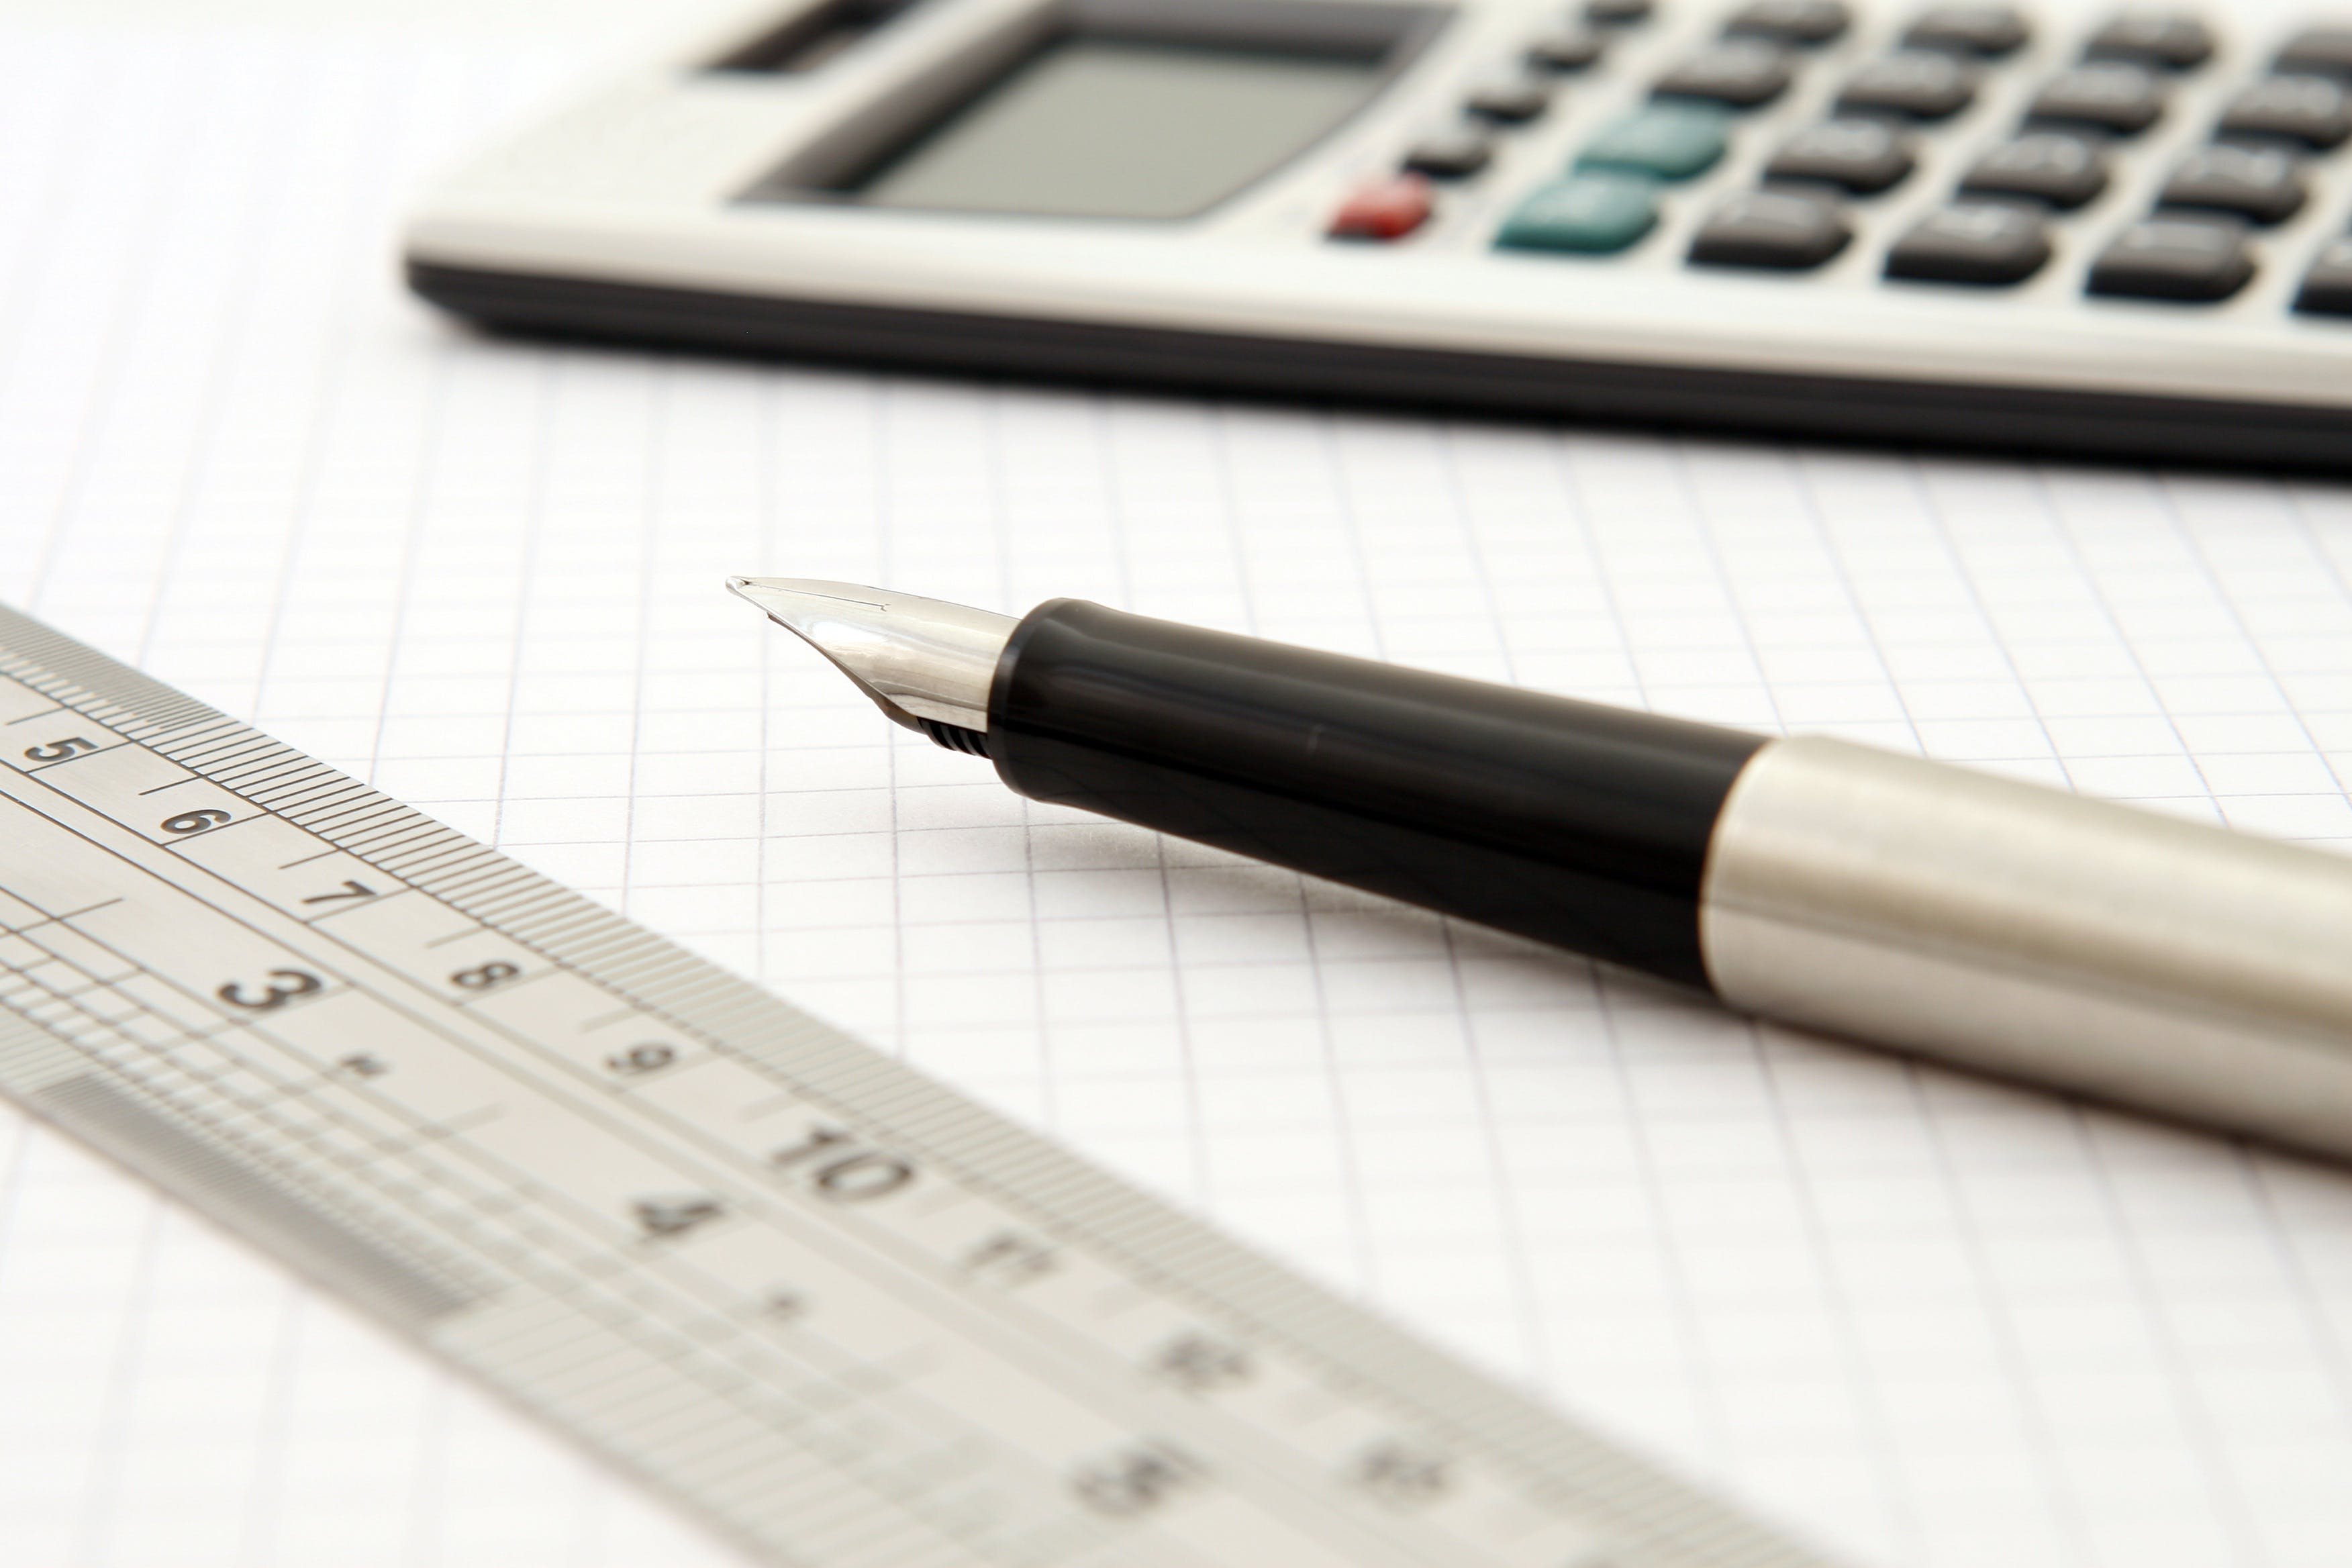 Shallow Focus of Silver and Black Fountain Pen Beside Ruler and Scientific Calculator